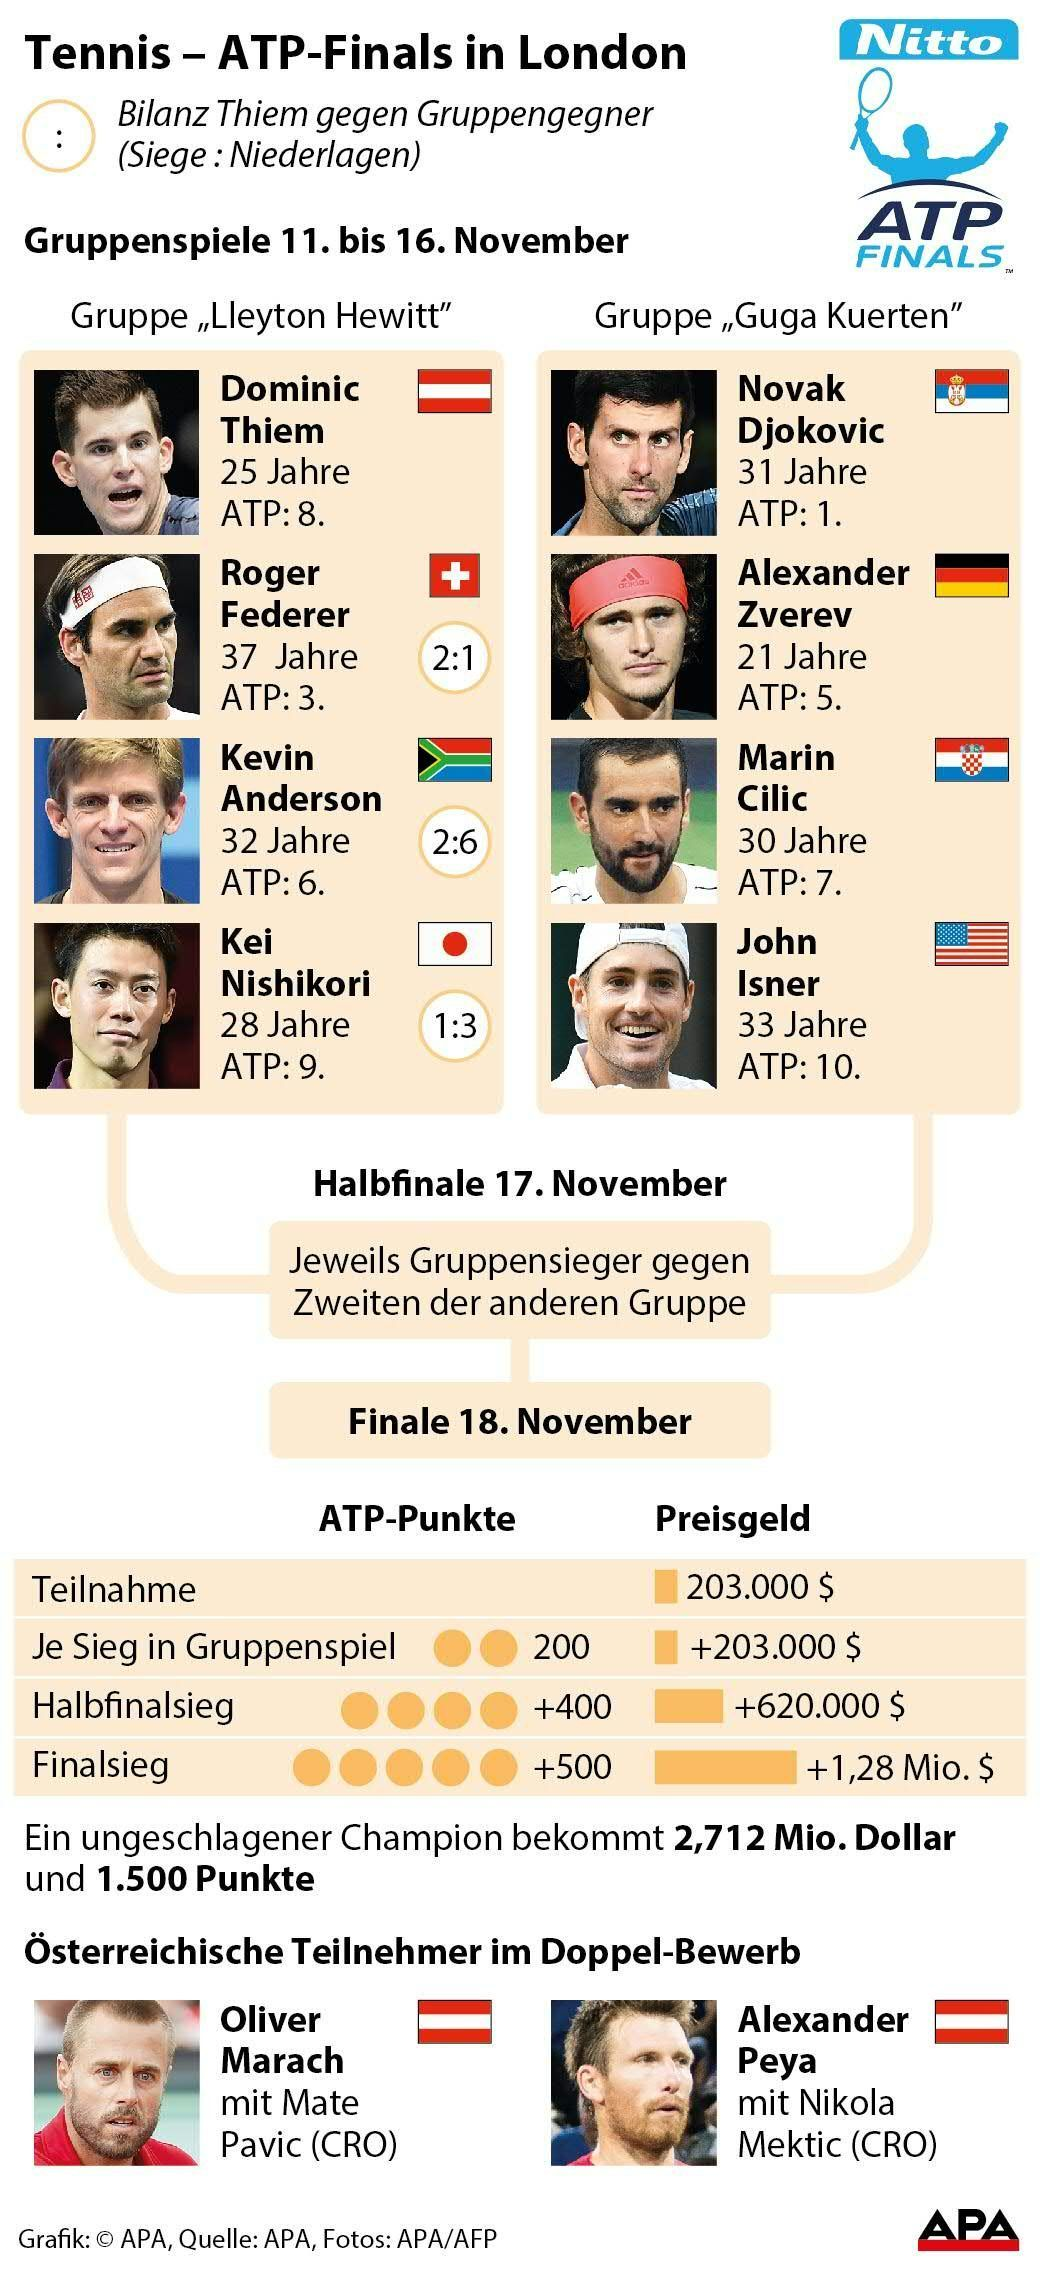 ATP-Finals in London